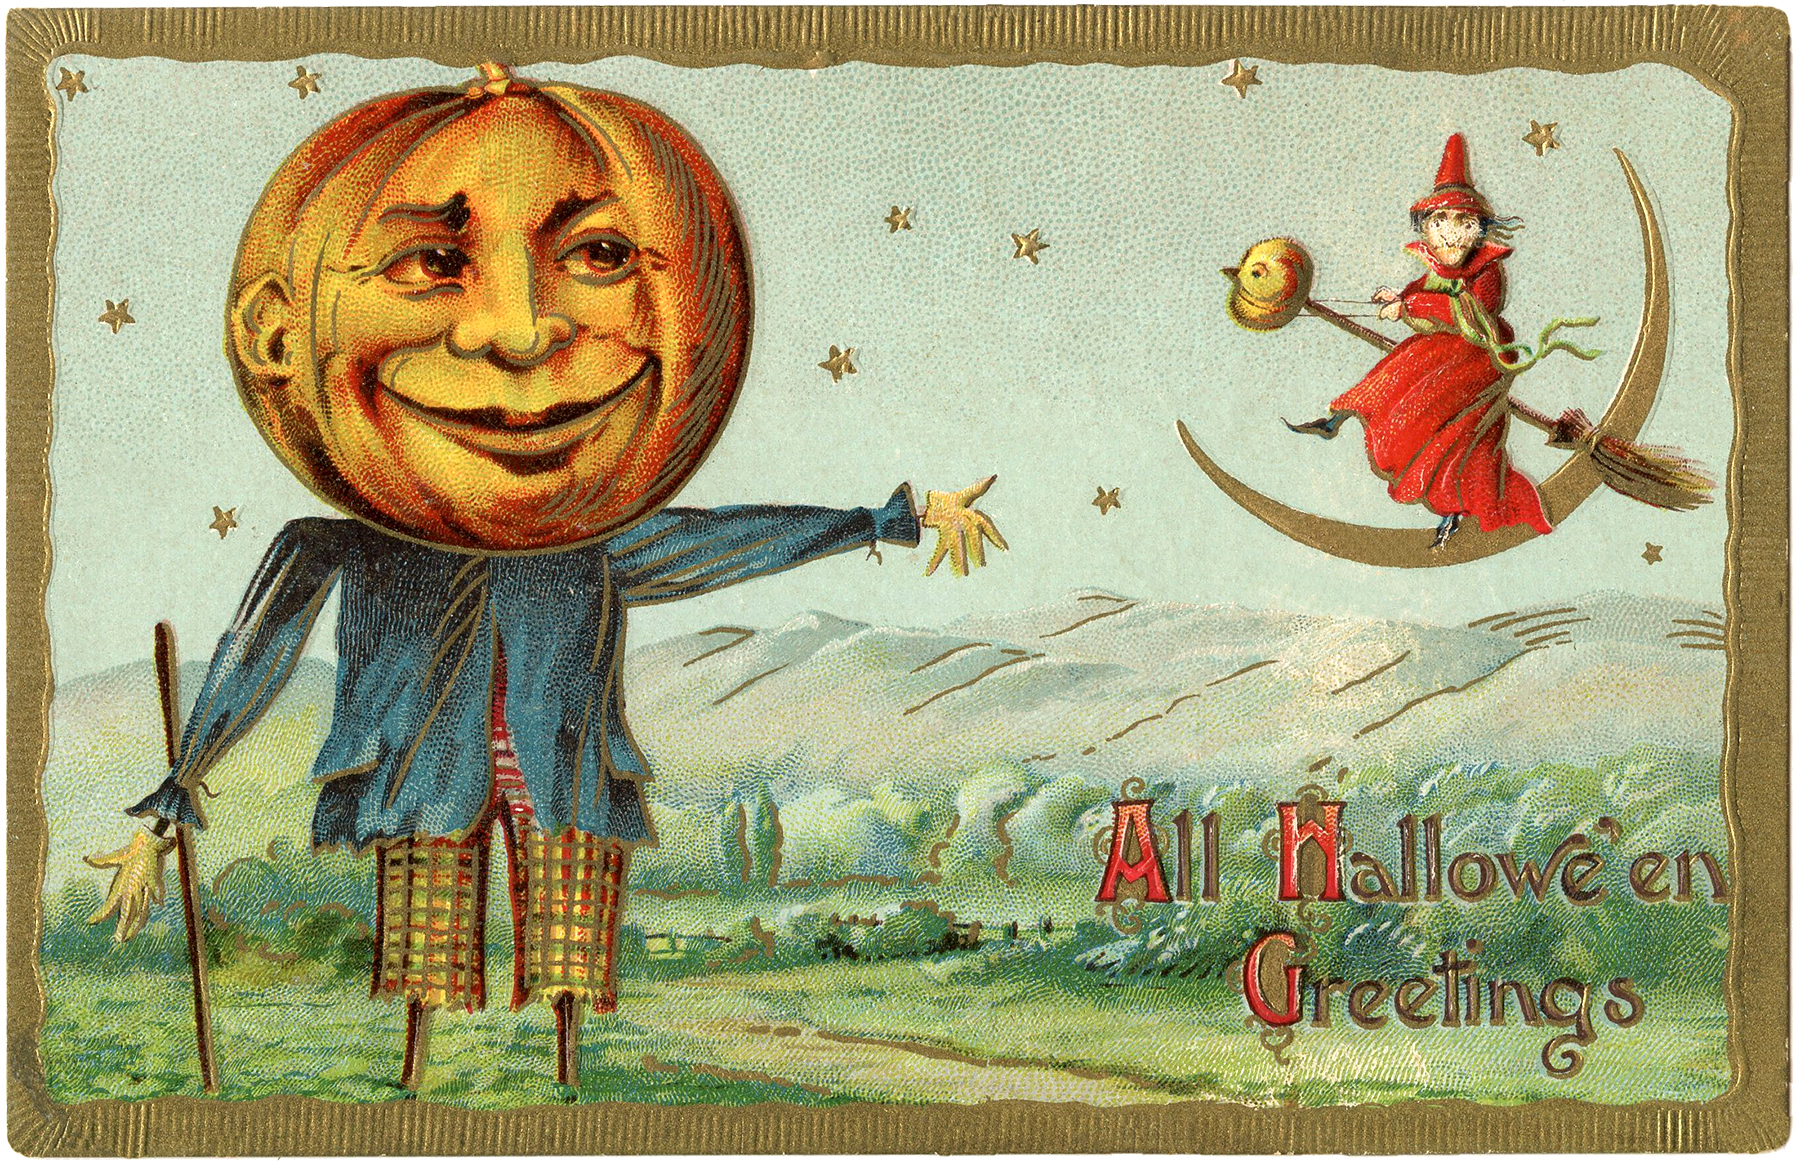 Must see Wallpaper Halloween Vintage - Halloween-Scarecrow-Image-GraphicsFairy  Collection_626850.jpg